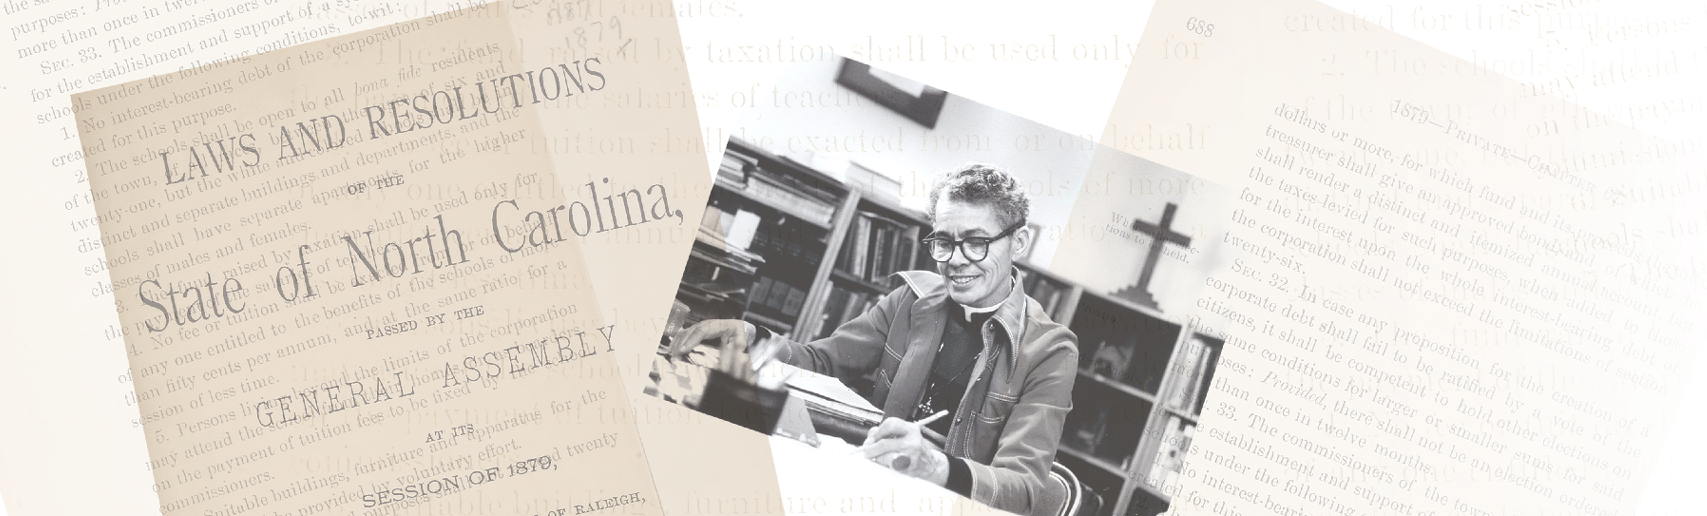 archival pages of text laws from North Carolina General Assembly and a photo of Pauli Murray